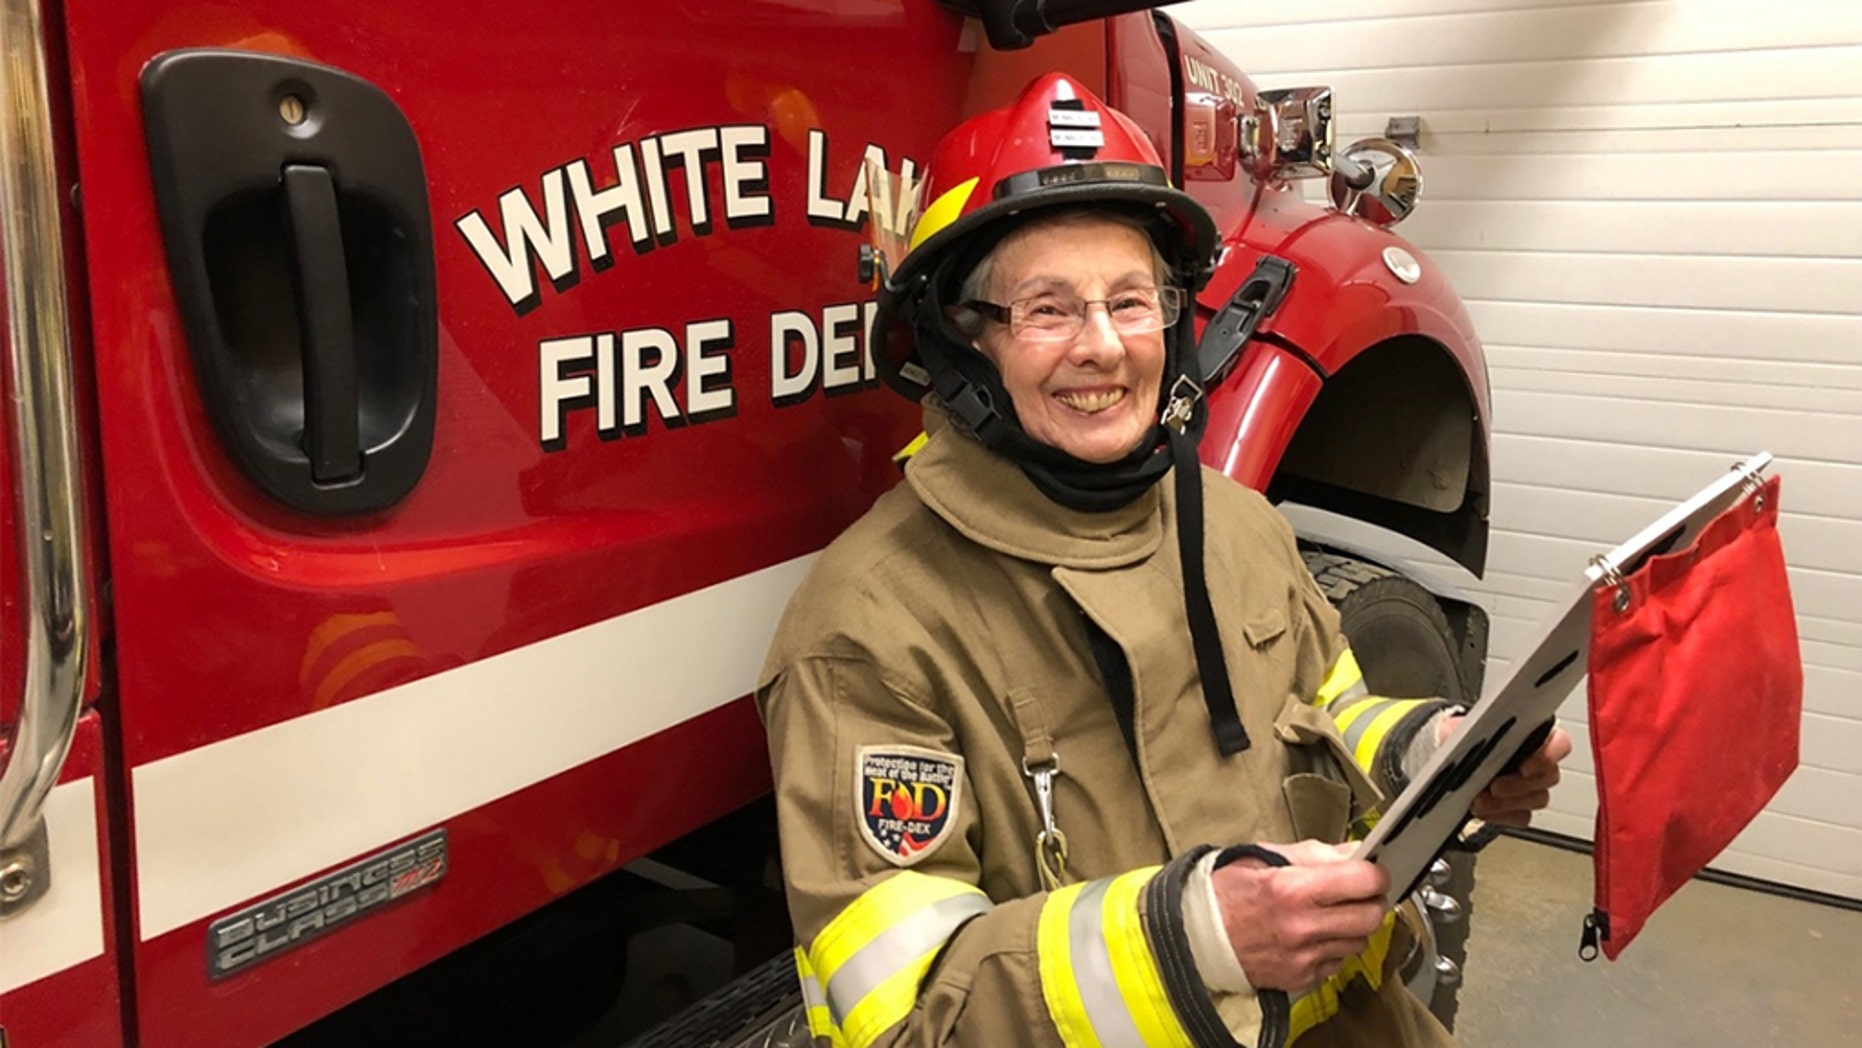 Lester McInally has been volunteering for the White Lake Fire Department since 2001.